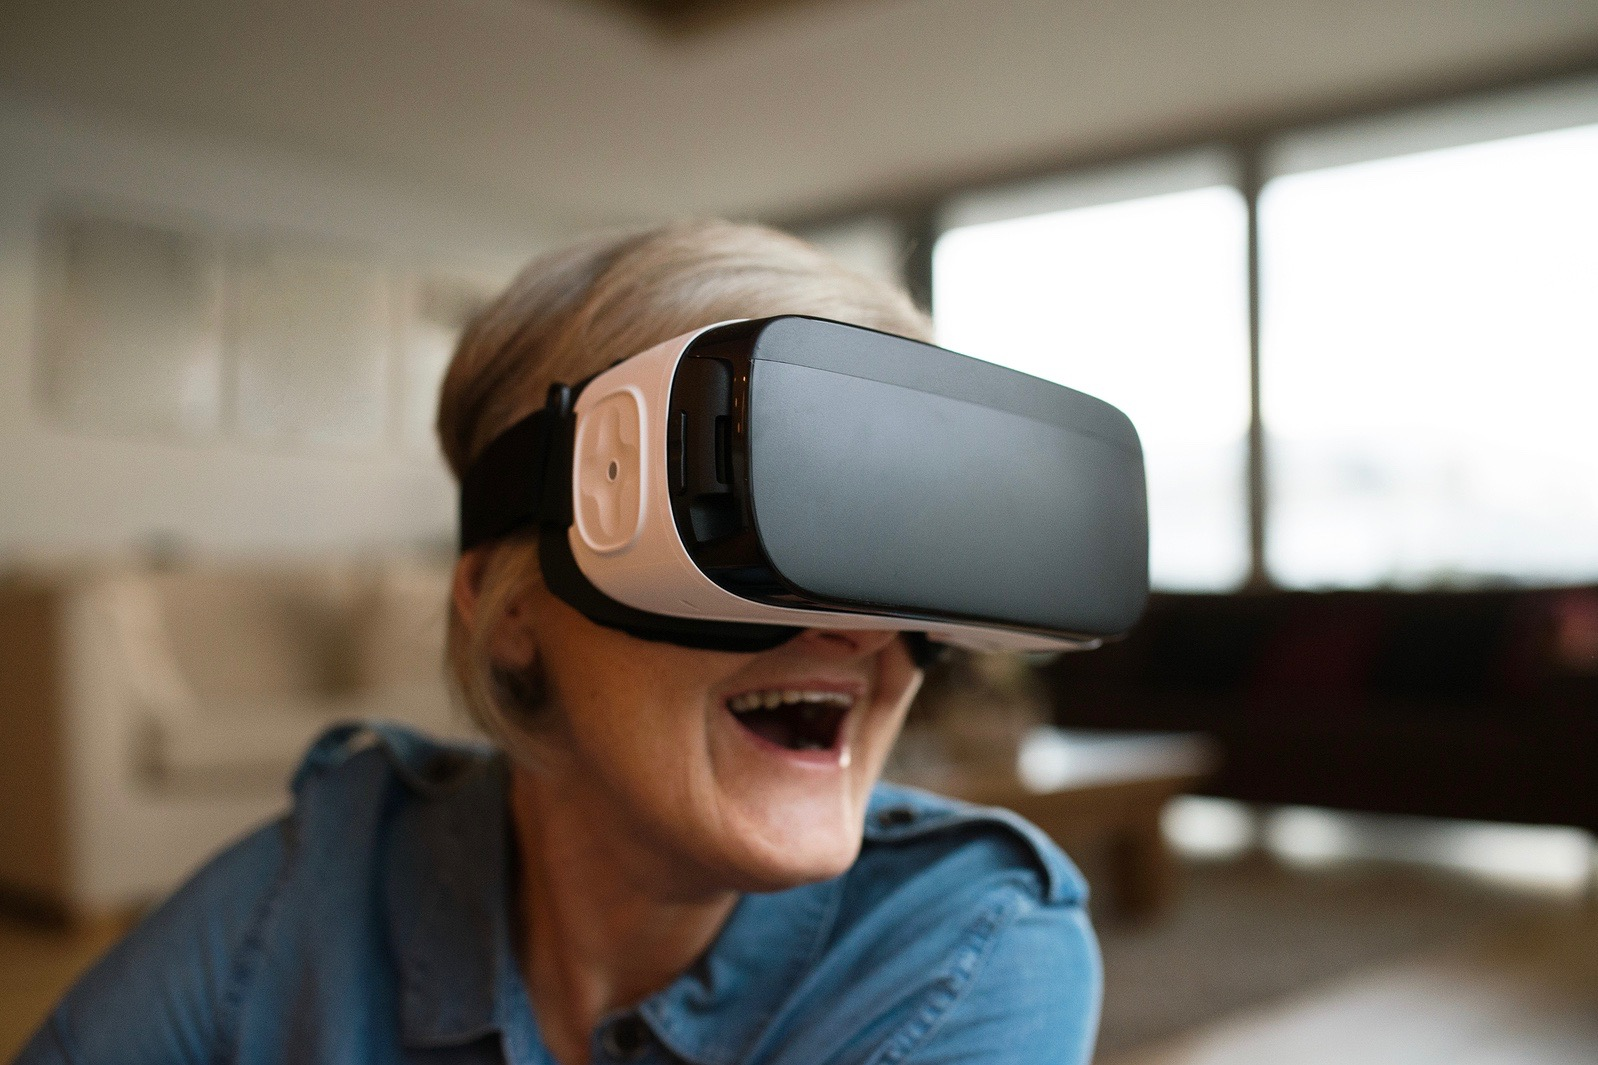 Virtual reality takes a step into active adult homes, offering virtual tours at two Pulte communities.